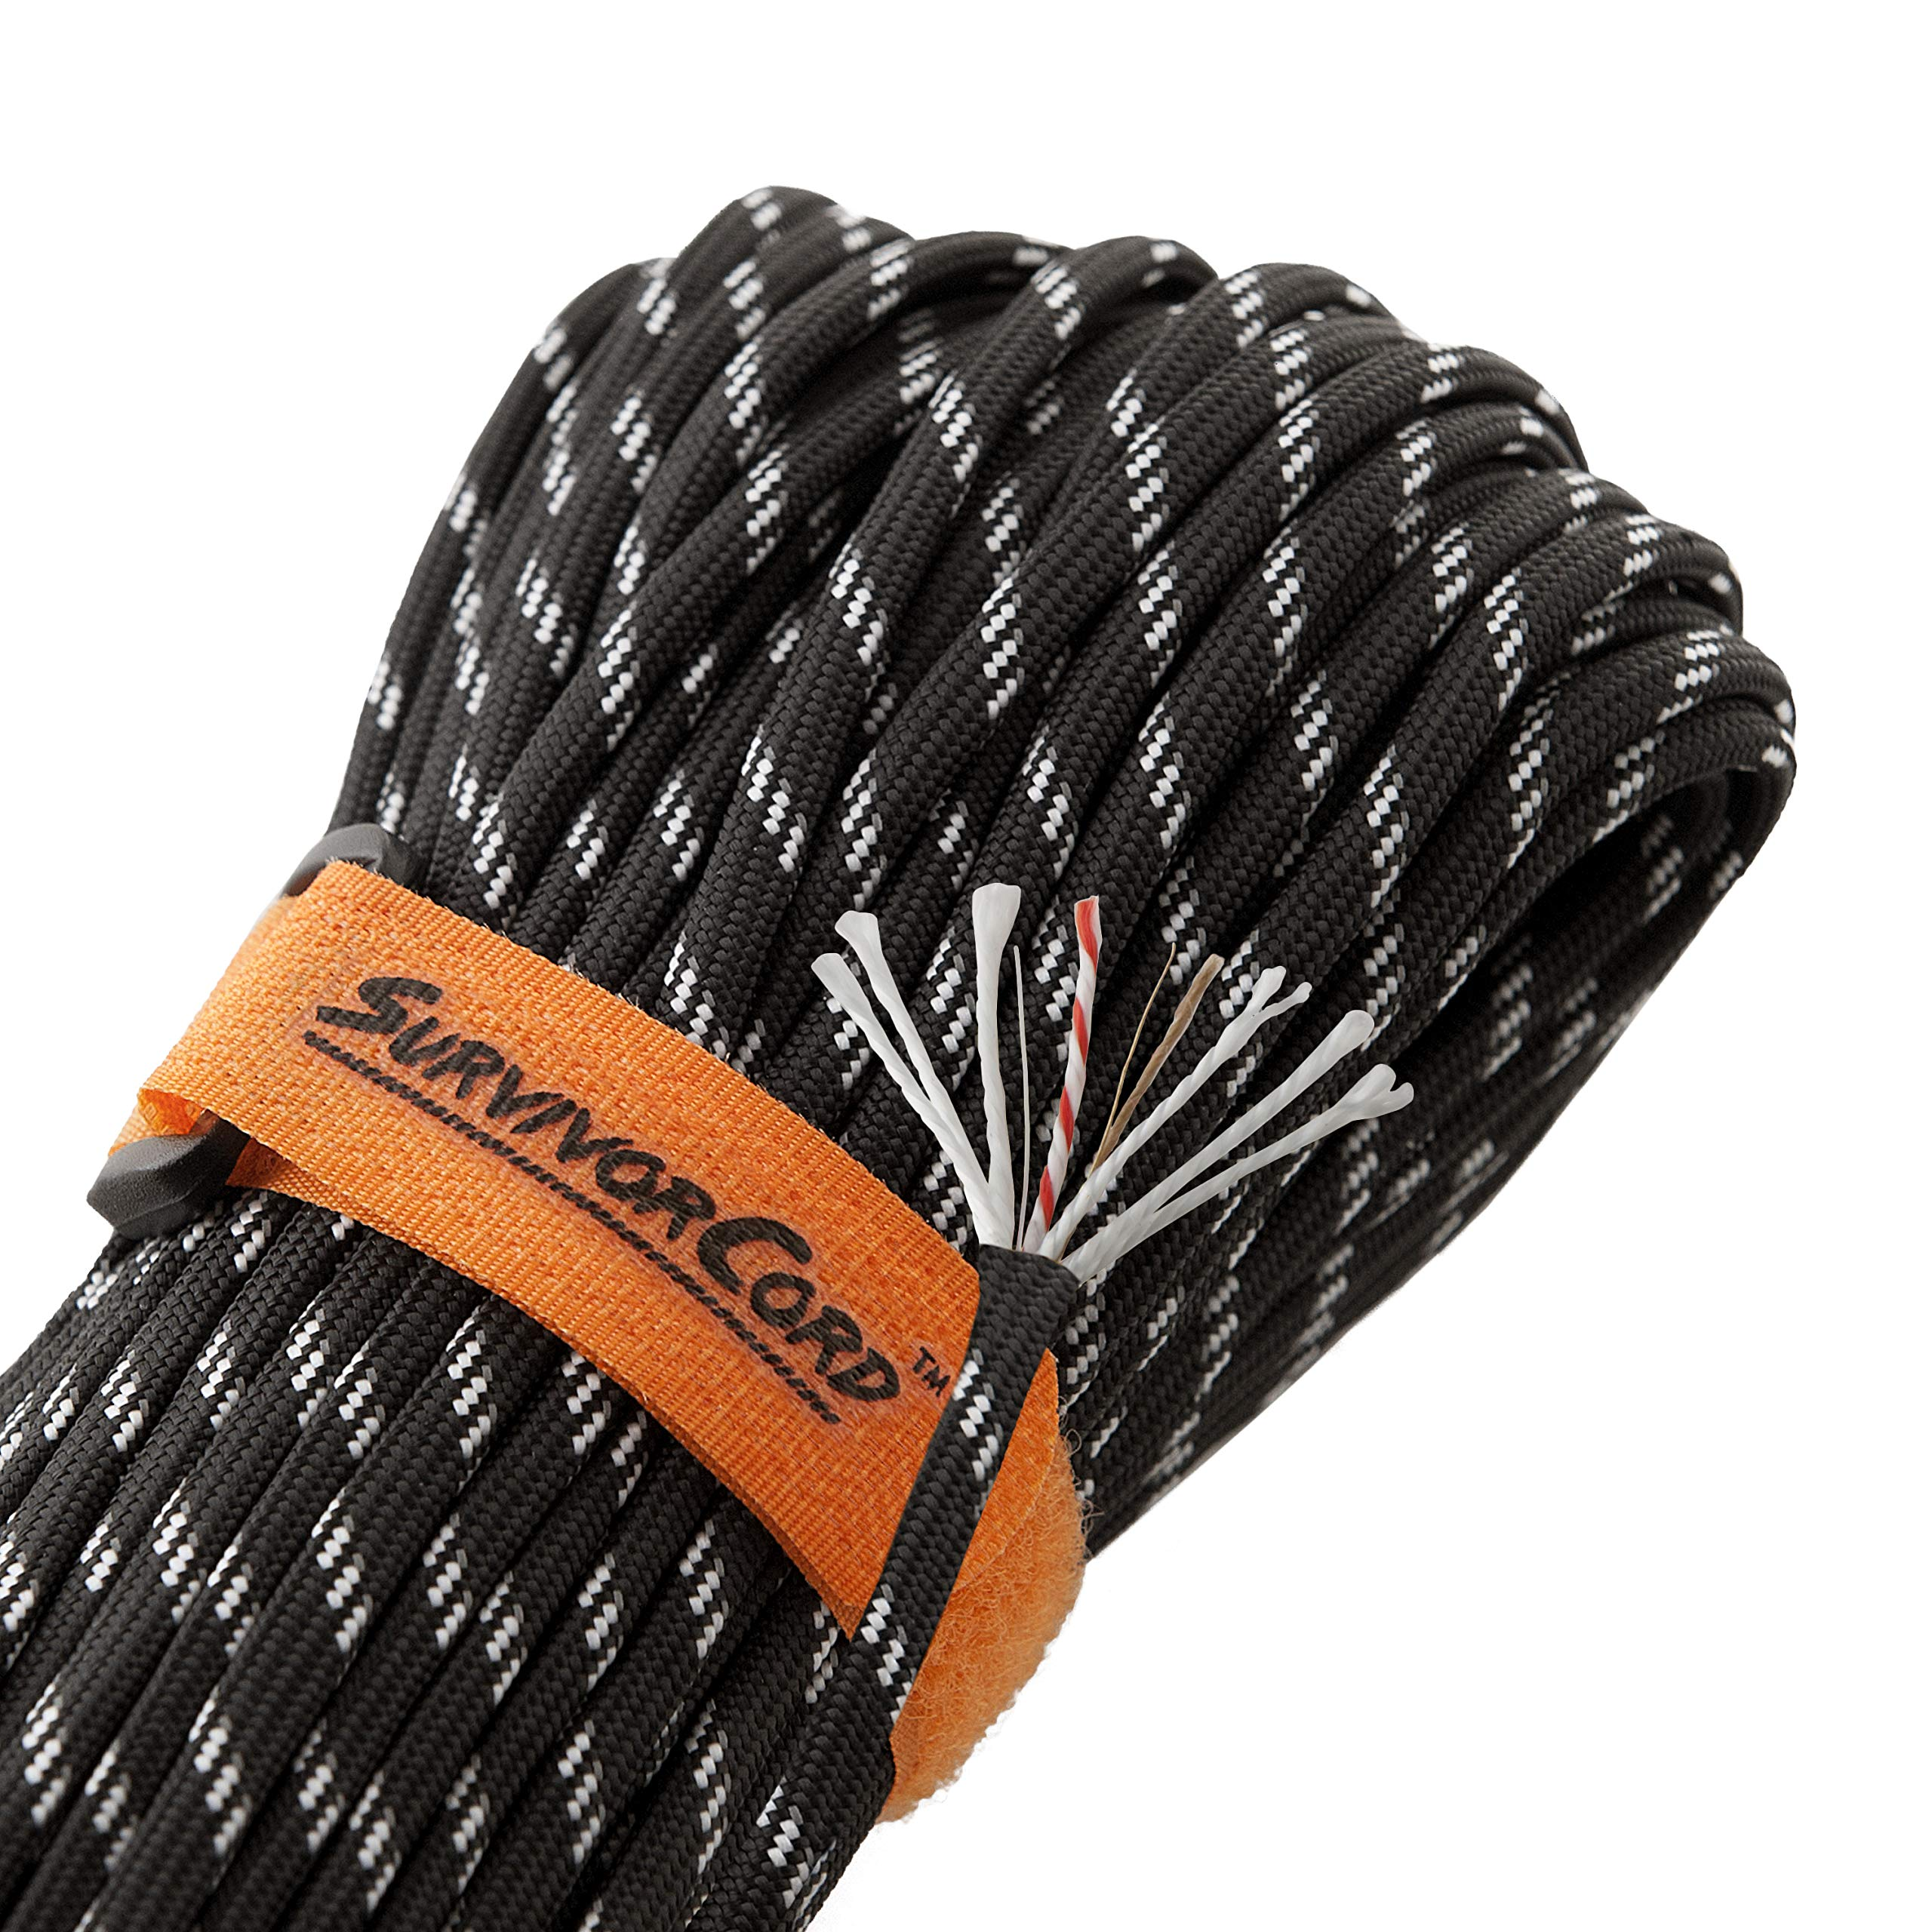 Titan SurvivorCord | Reflective Black | 103 Feet | Patented Military Type III 550 Paracord/Parachute Cord (3/16'' Diameter) with Integrated Fishing Line, Fire-Starter, and Utility Wire. by Titan Paracord